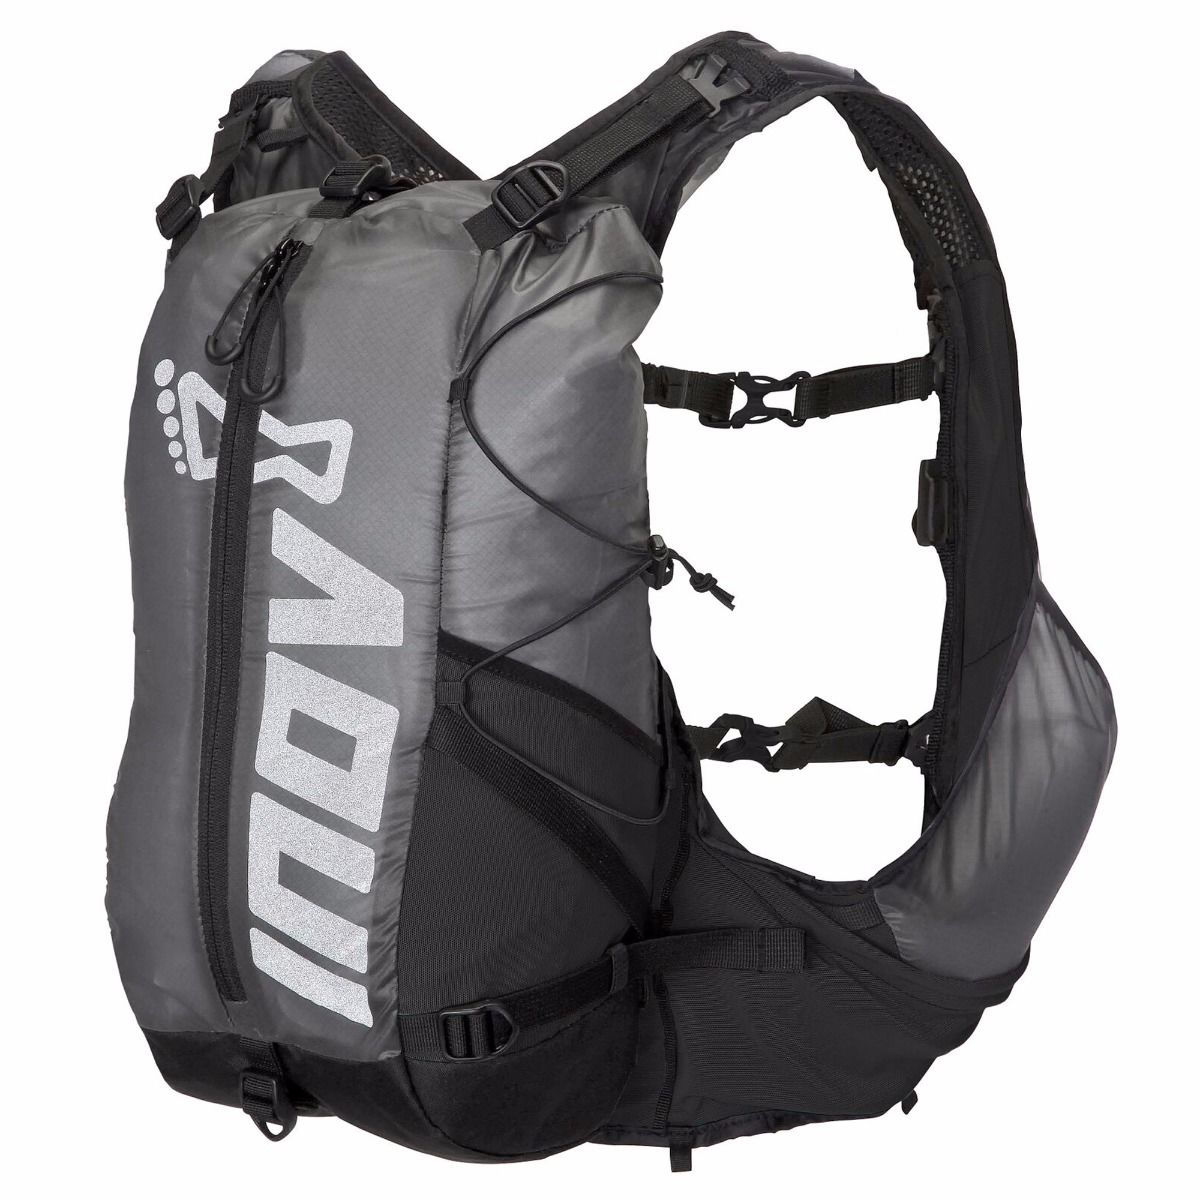 Sac d'hydratation Inov-8 All Terrain Pro 0-15 - L/XL Noir Sacs d'hydratation